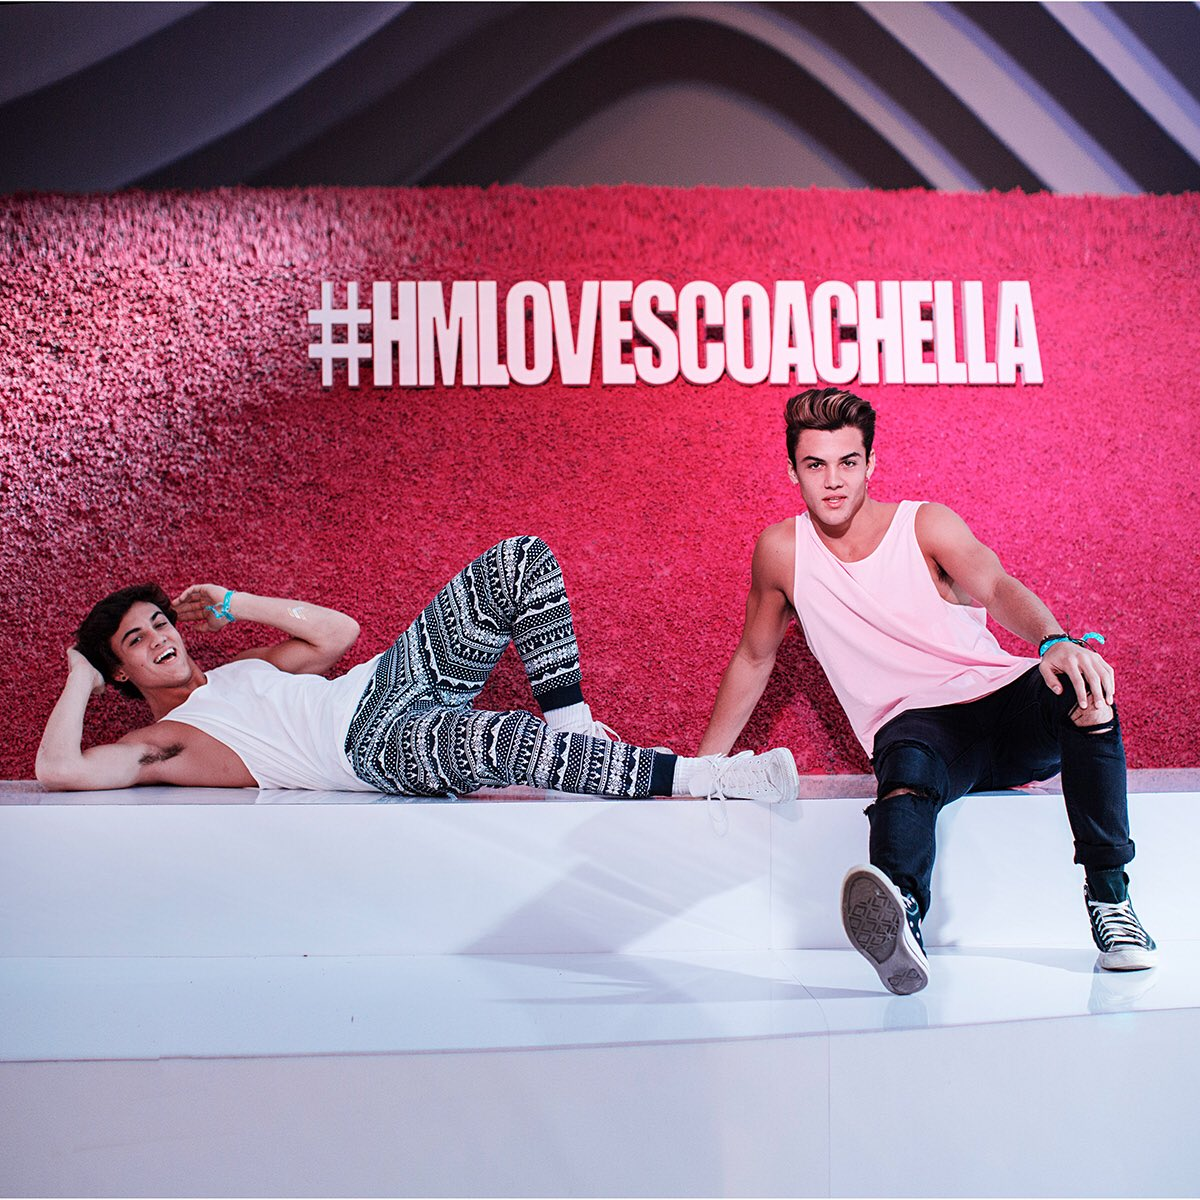 .@GraysonDolan @EthanDolan kickin' it at our #HMLovesCoachella tent! Check out their visit: